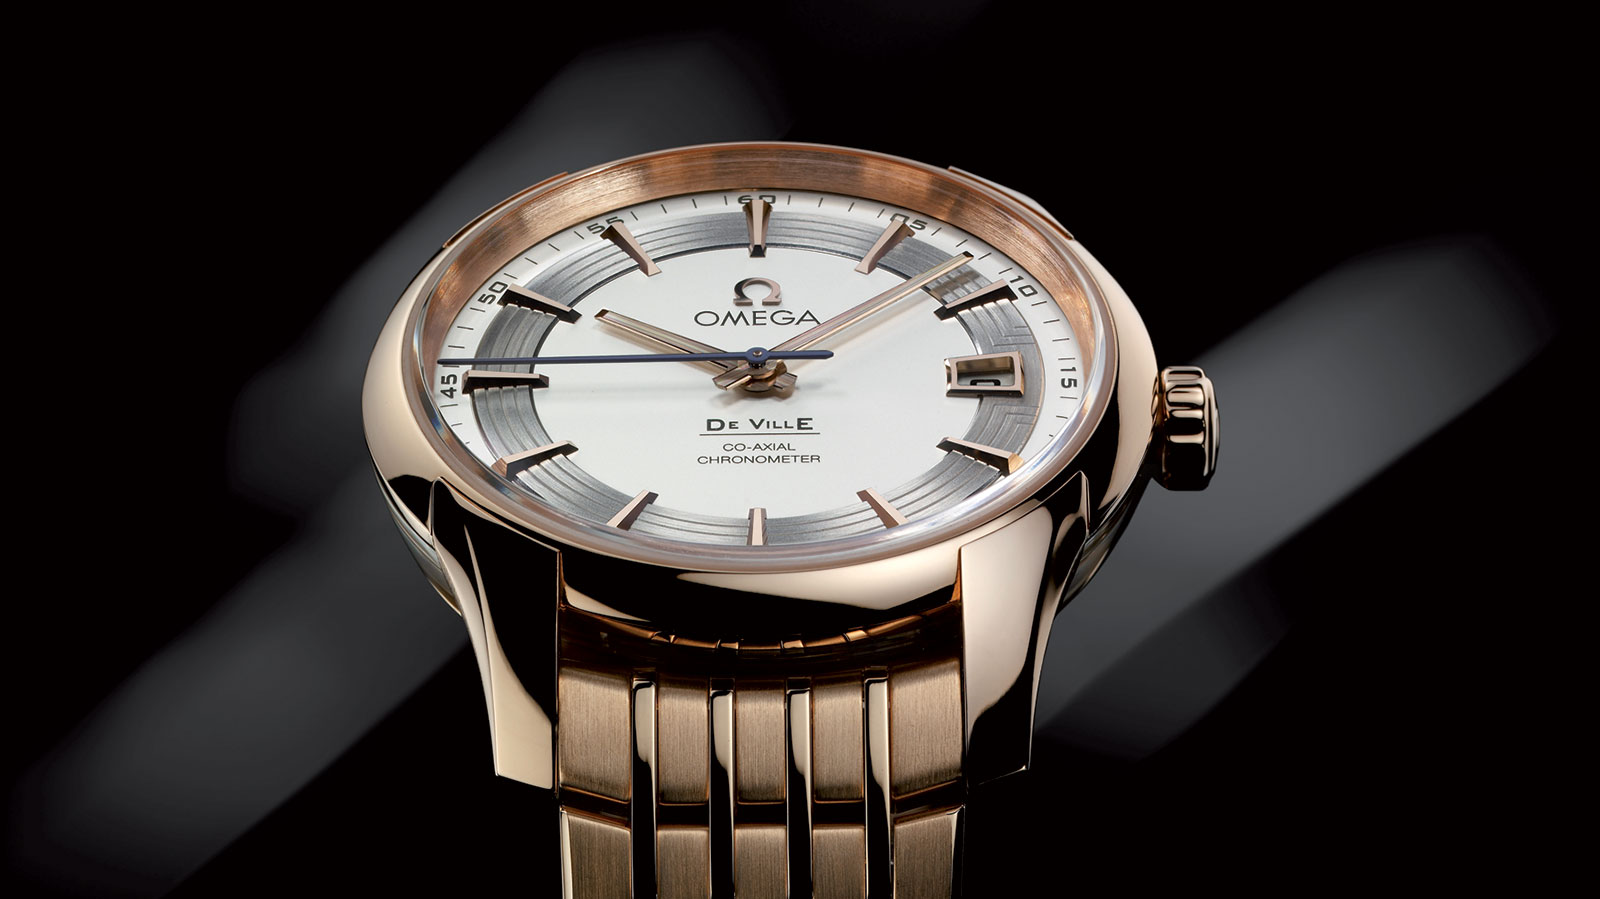 De Ville Hour Vision Hour Vision Omega Co‑Axial 41 mm Watch - 431.60.41.21.02.001